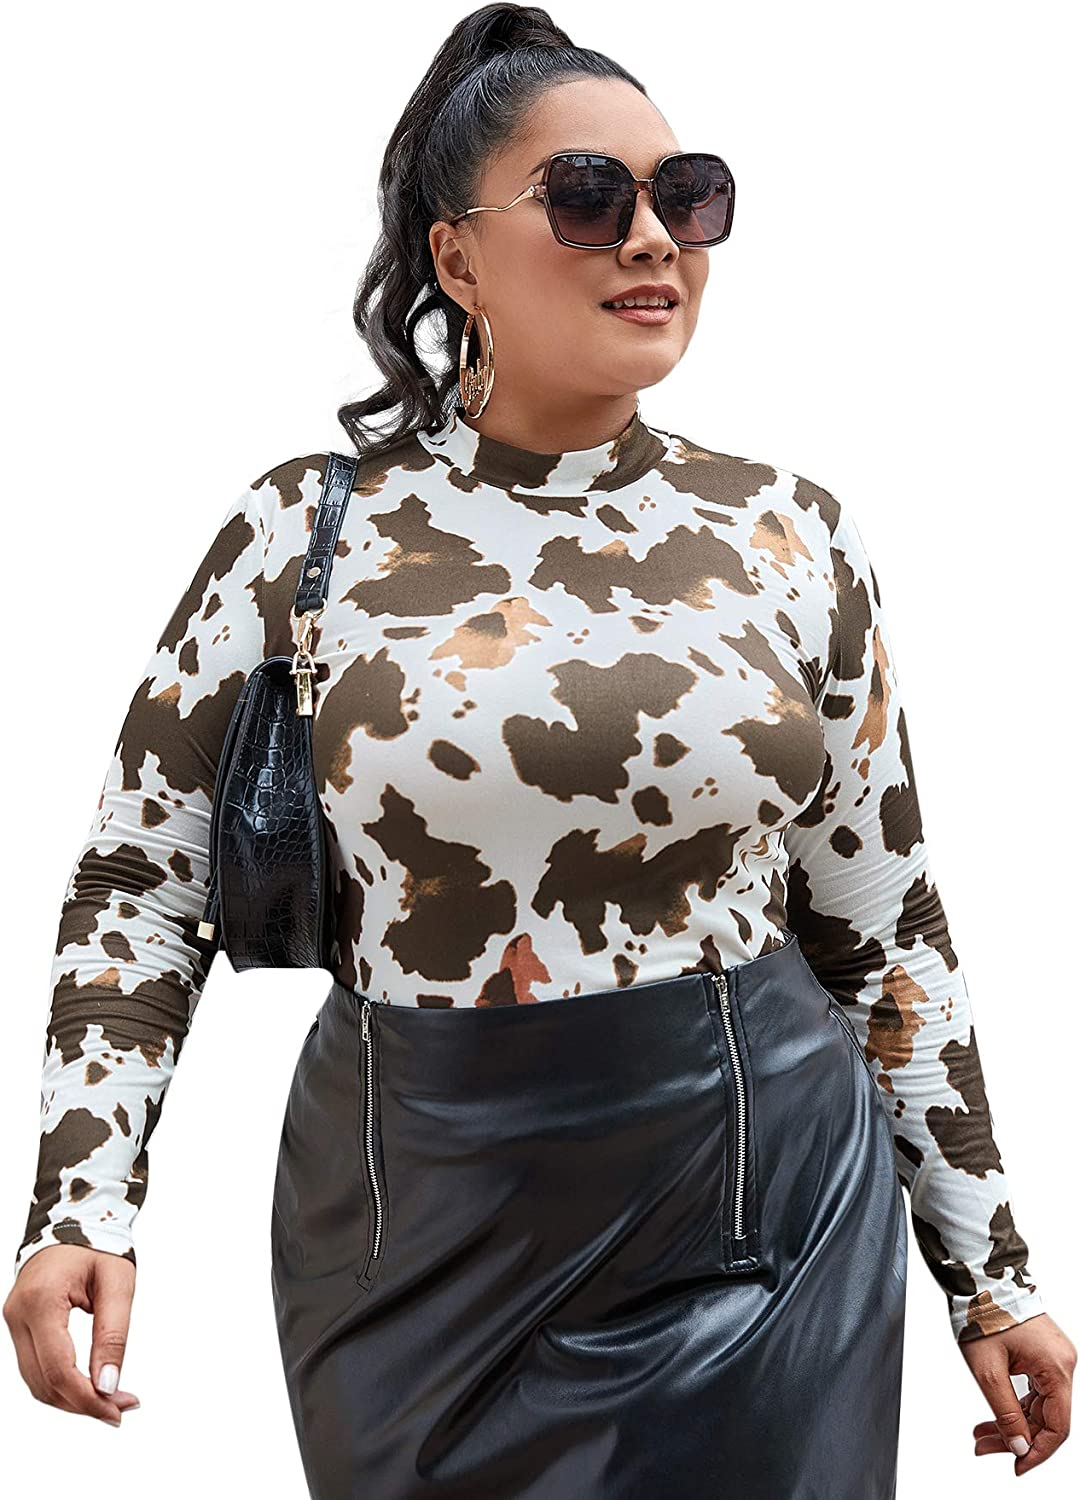 SheIn Women's Mock Neck Long Sleeve Fitted Graphic Print T-Shirt Tee Tops